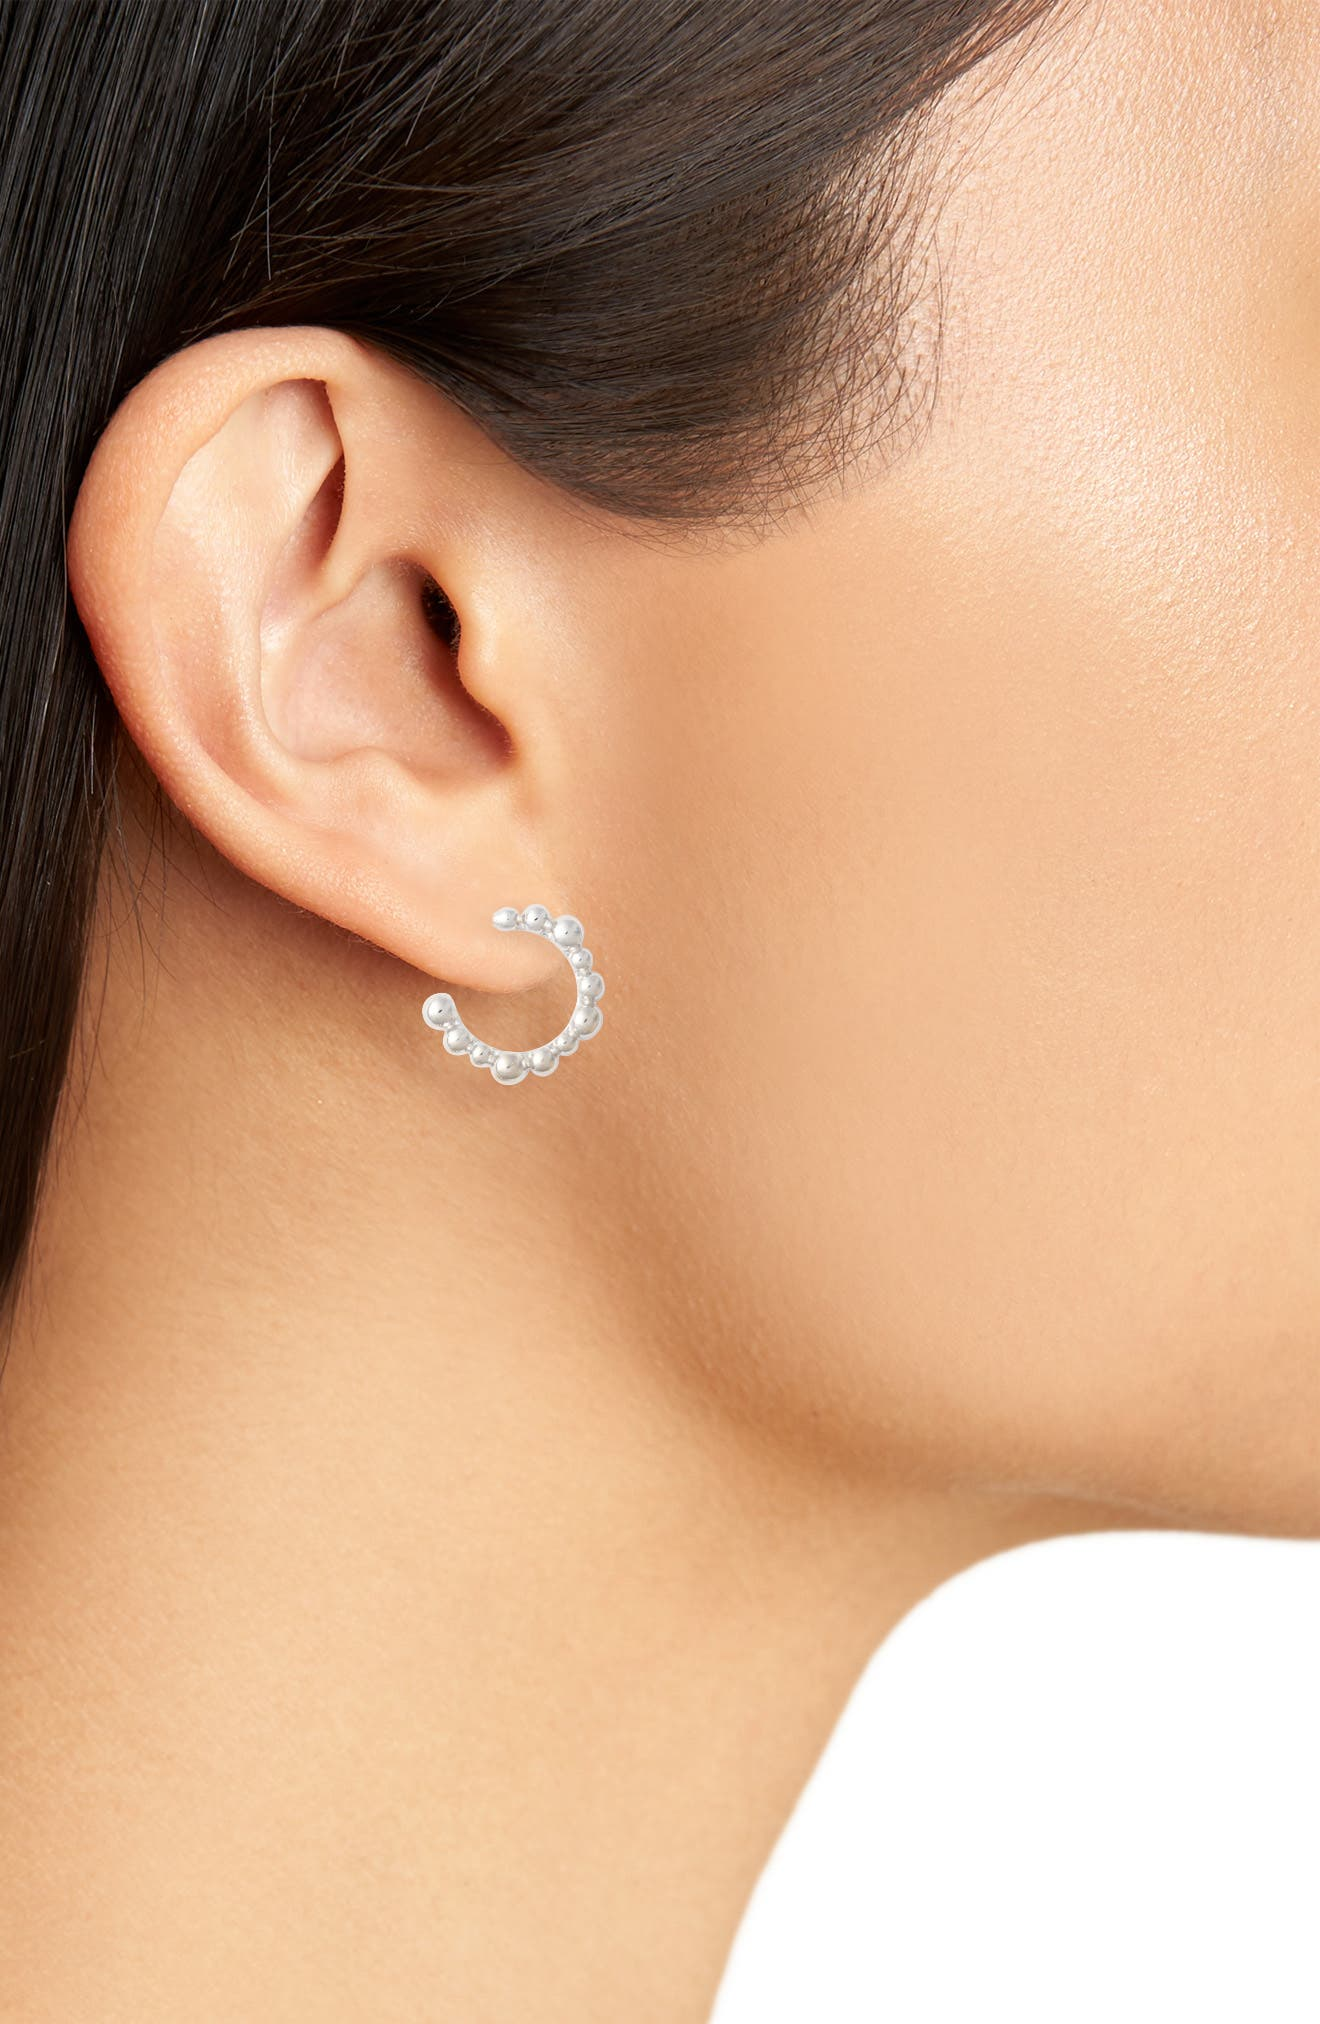 Bubbling Brook Hoop Earrings,                             Alternate thumbnail 2, color,                             Silver